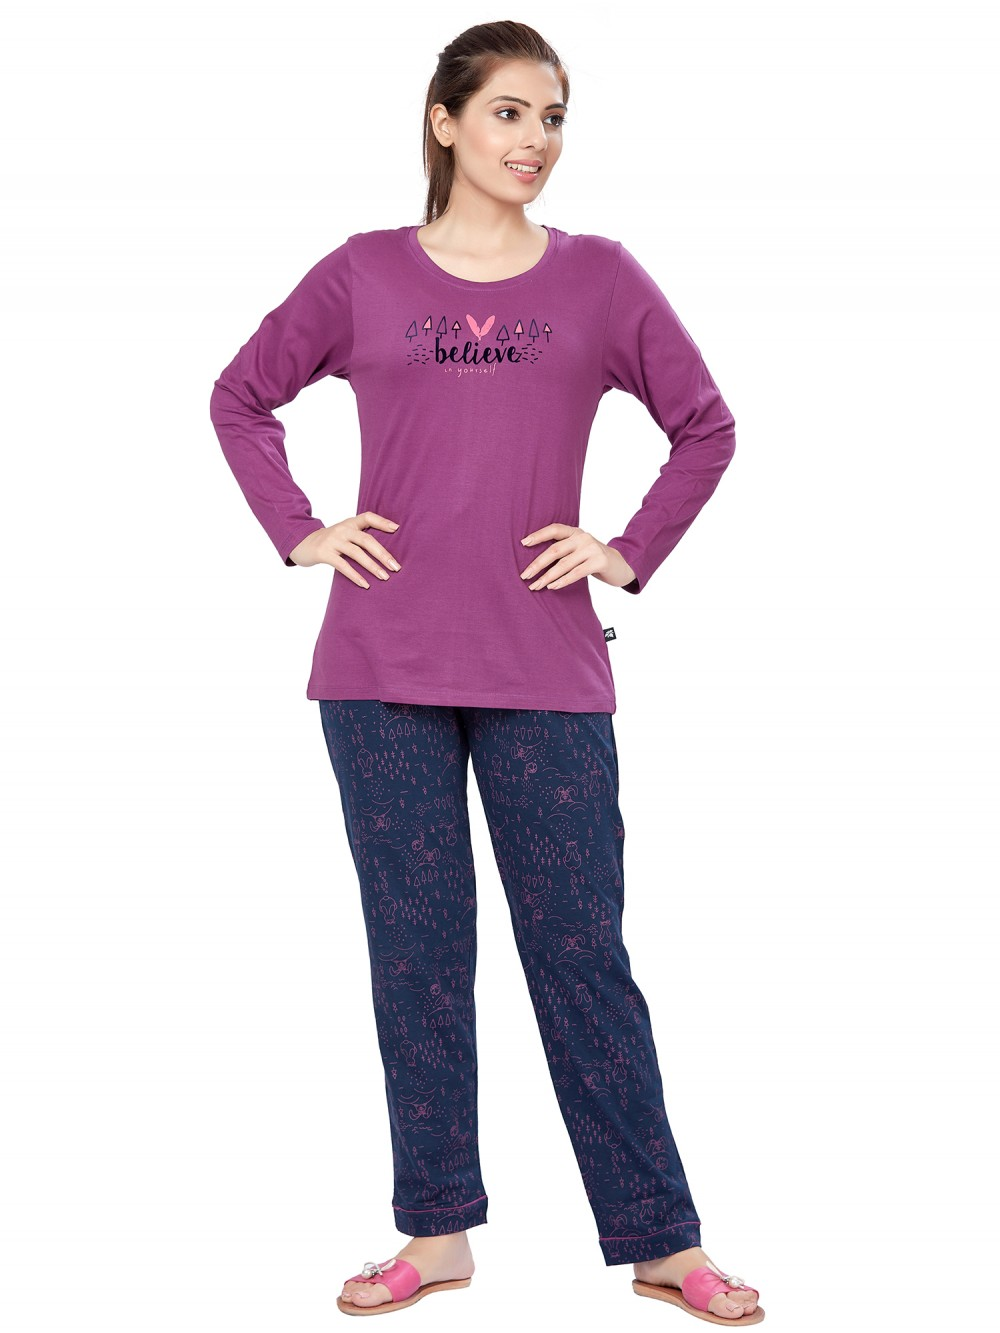 July Nightwear for women Essentials T- Shirt   Pyjama -PC708L